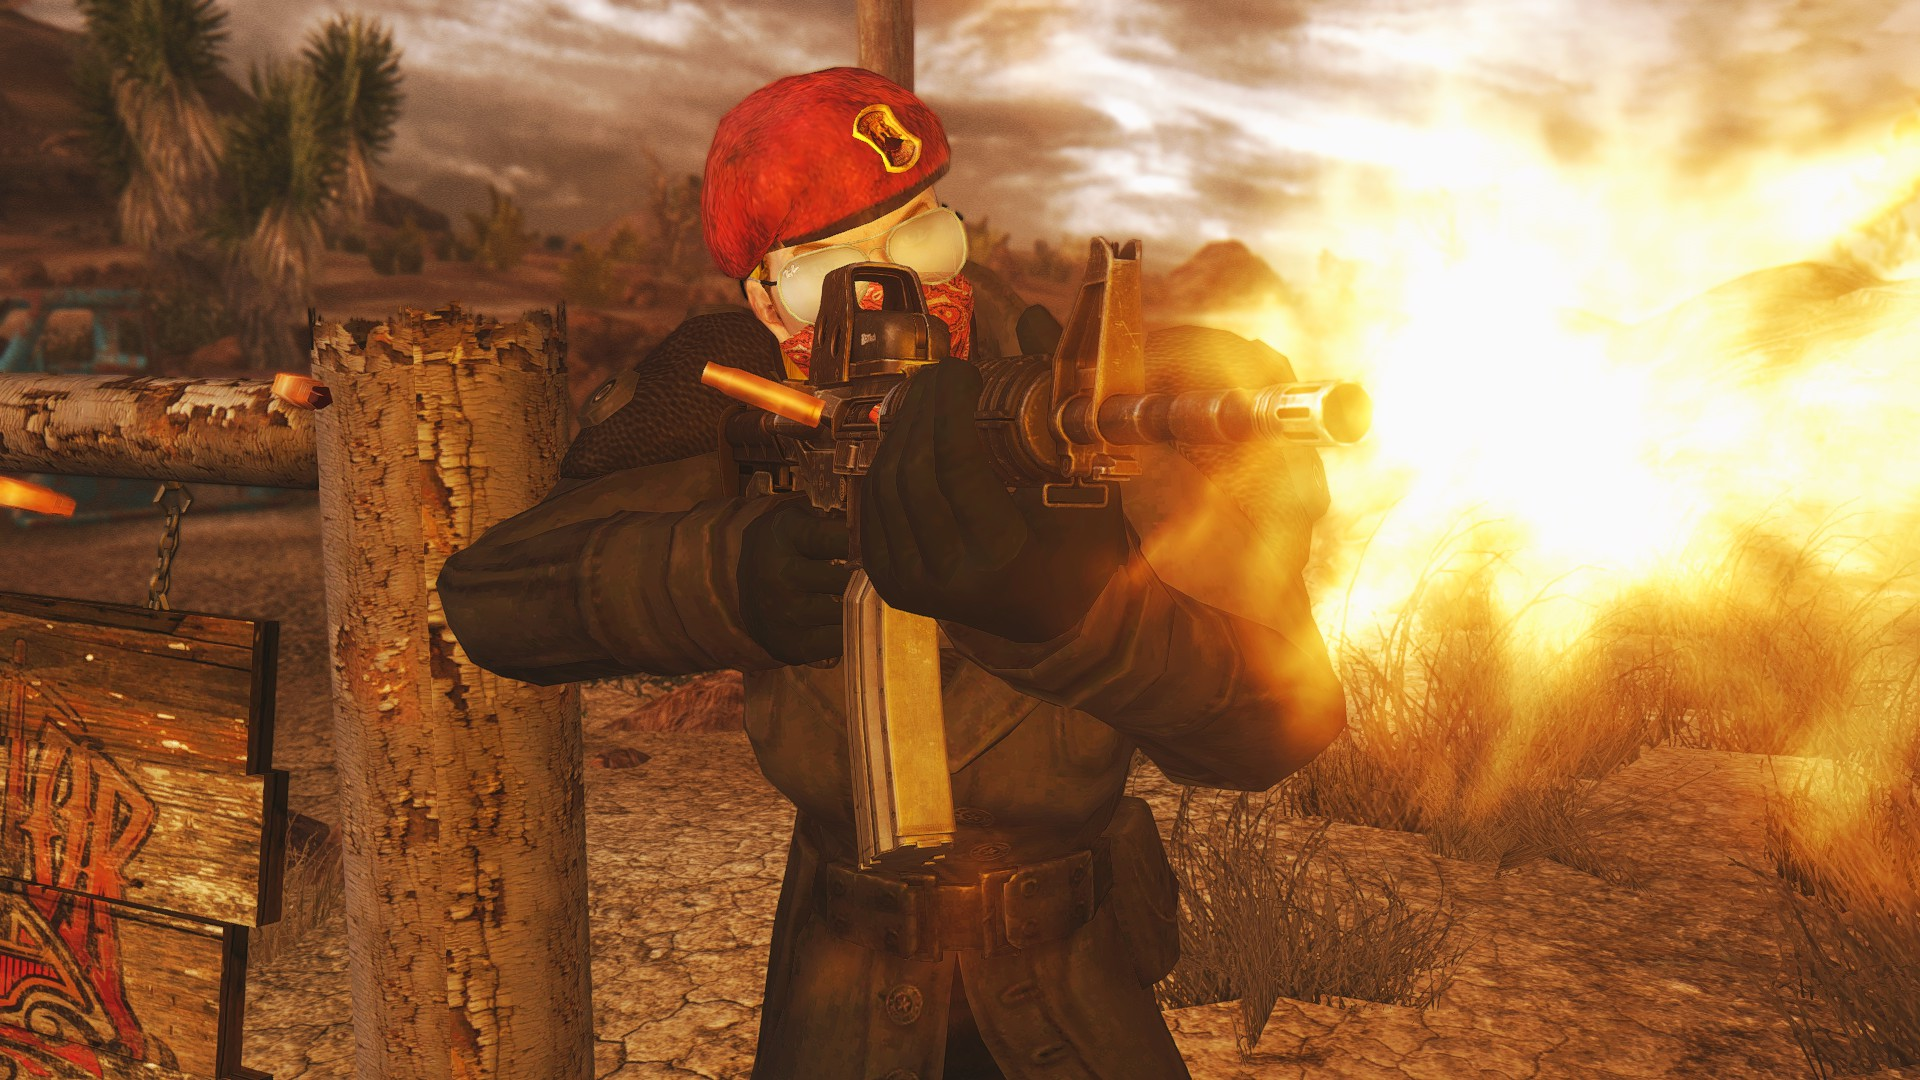 fallout steam mods on you download can